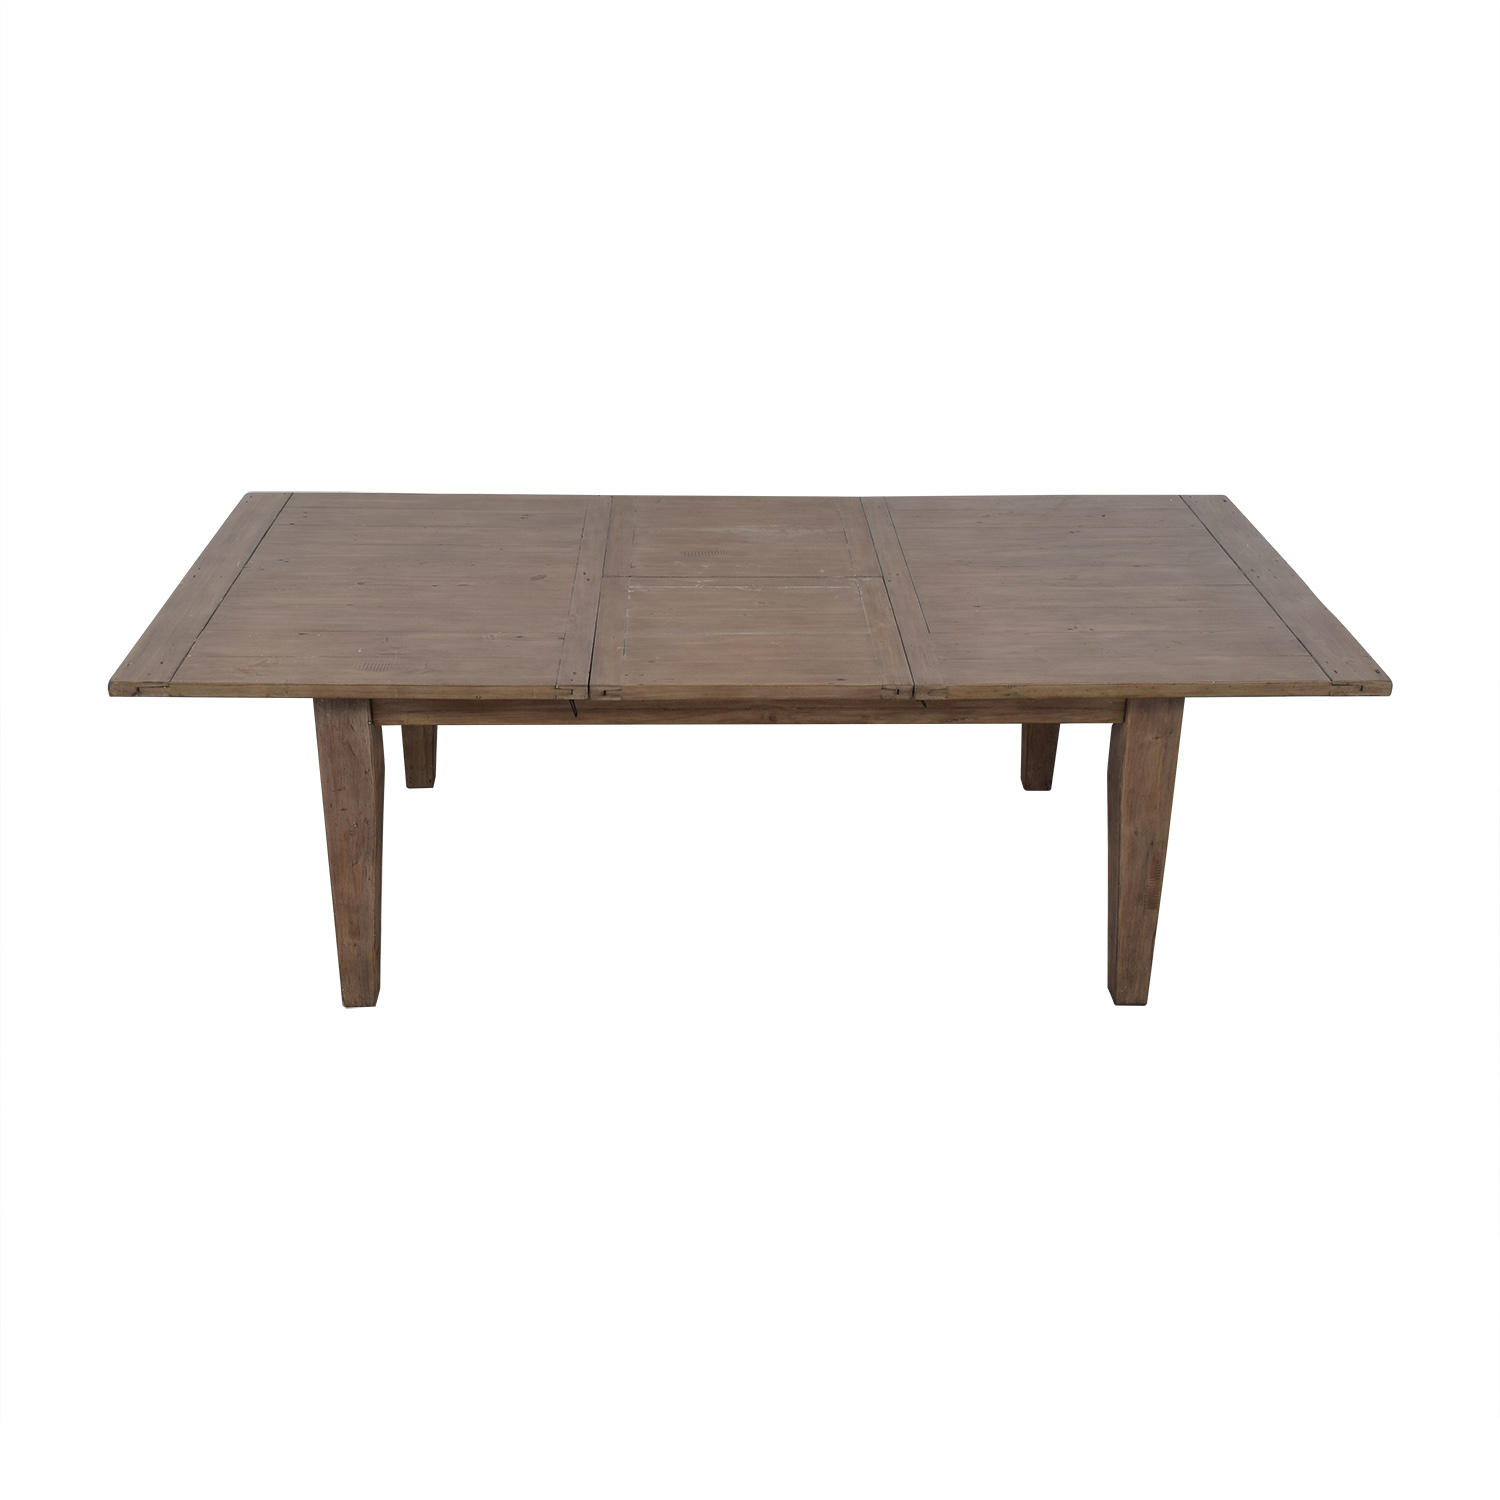 Four Hands Four Hands Irish Coast Extension Dining Table dimensions